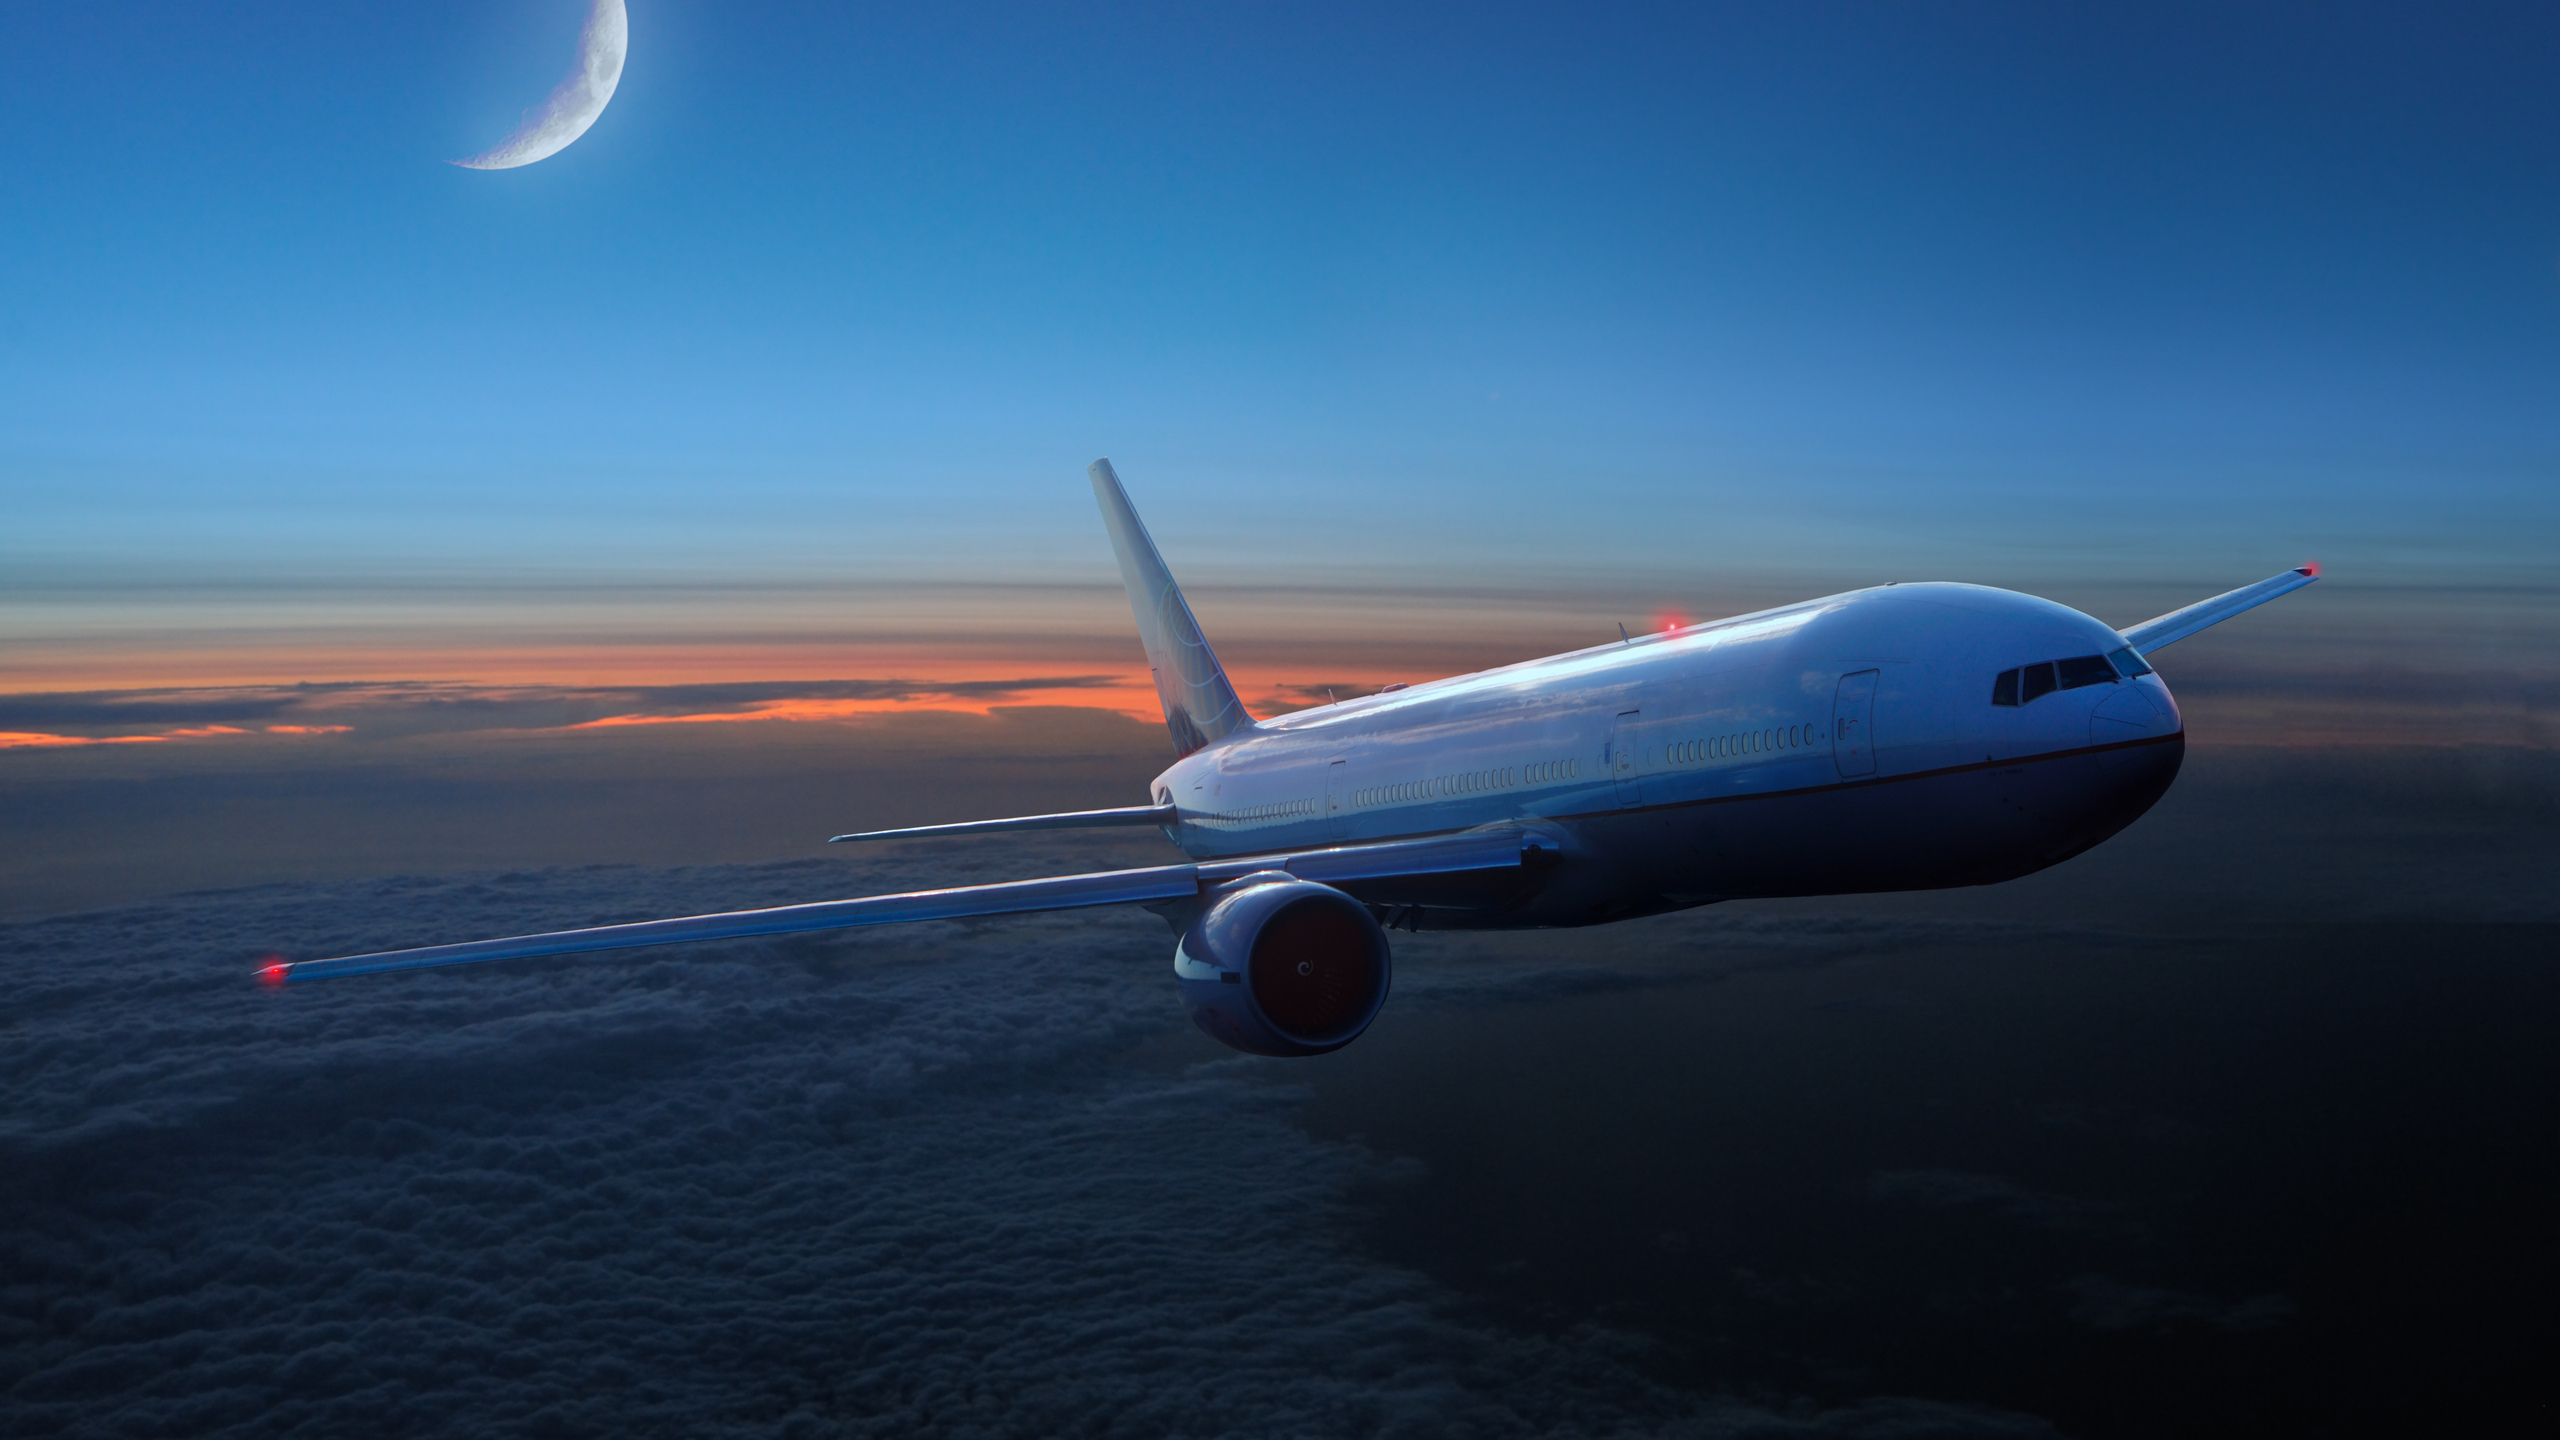 Plane HD Wallpaper